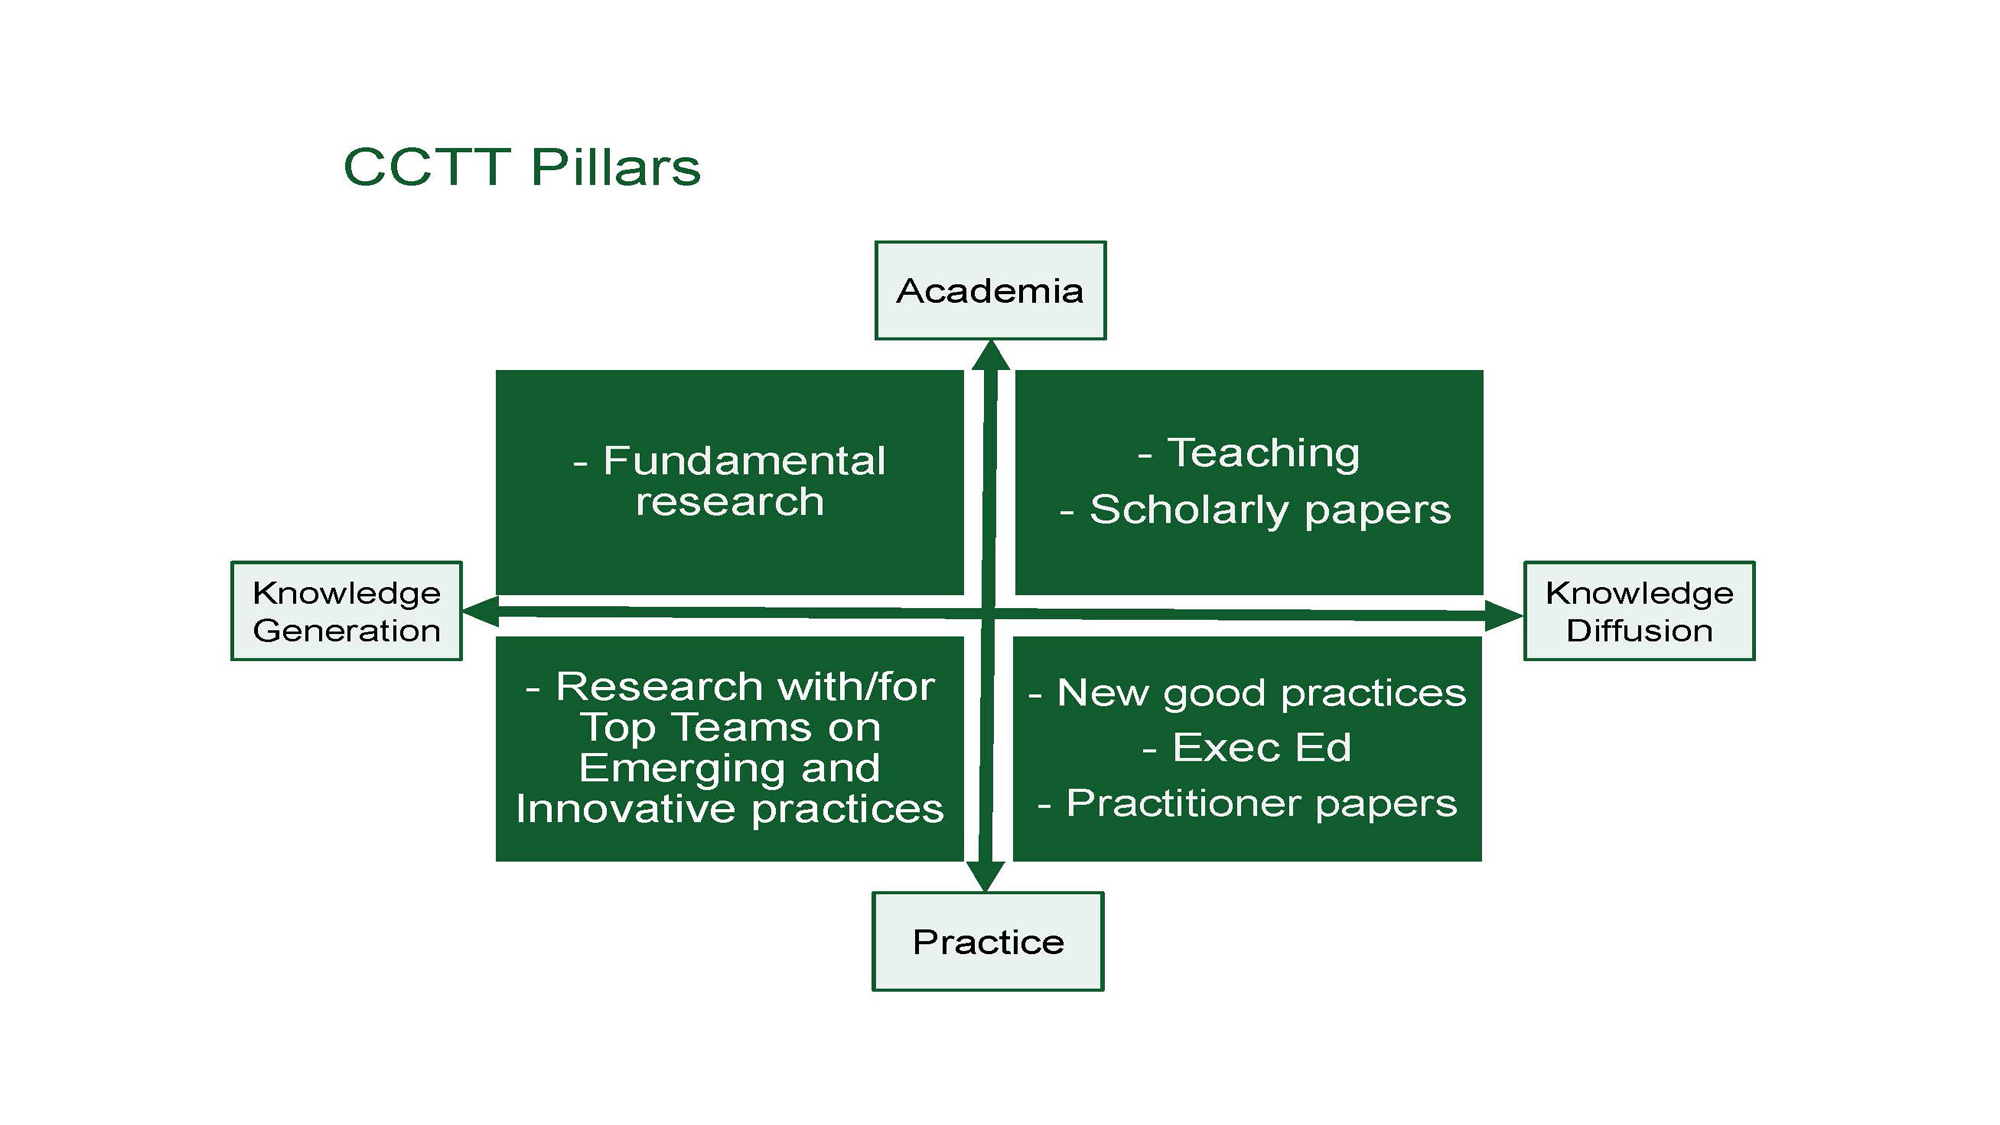 Graphic of the SGTT Pillars: Acadamia, knowledge diffusion, practice, knowledge generation